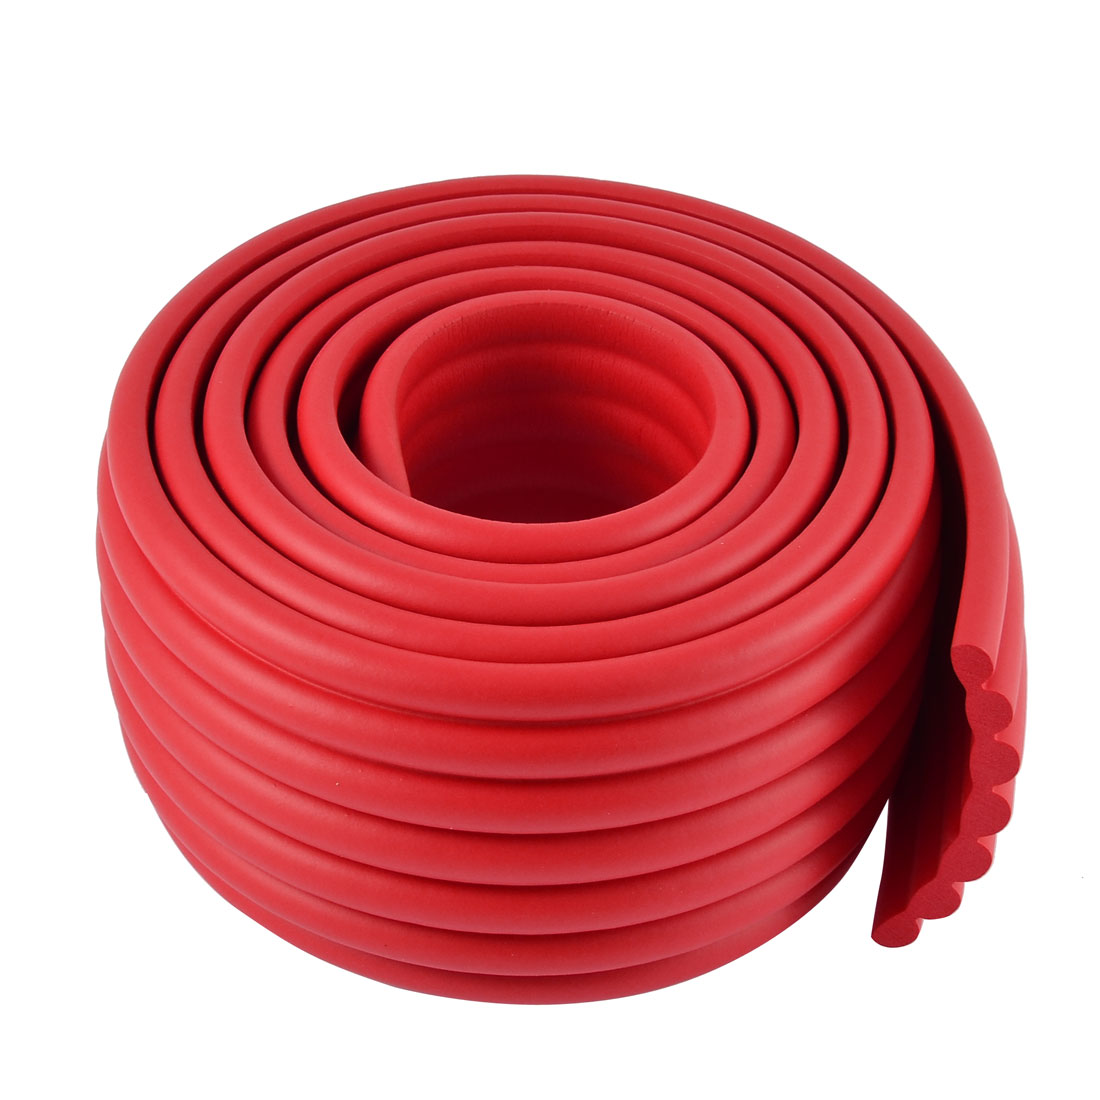 Furniture Corner Edge Safety Protection Cushion Guard Red w Adhesive Tape